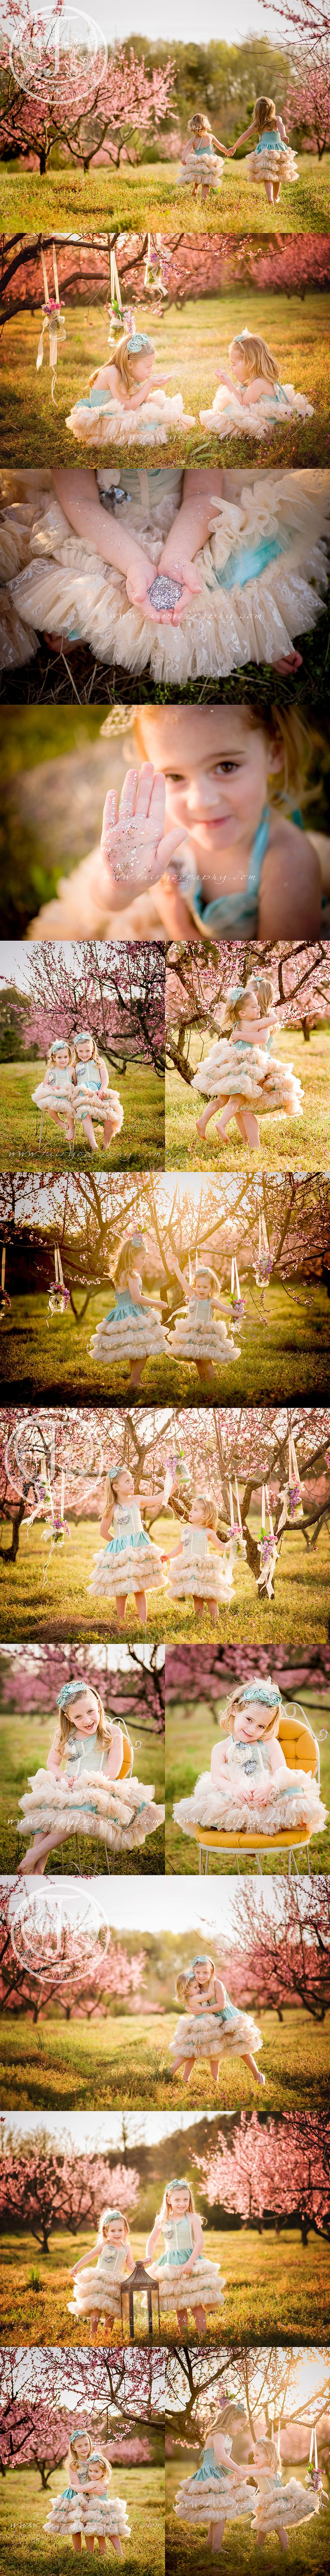 Two sisters - Watkinsville photographer - Fairyography